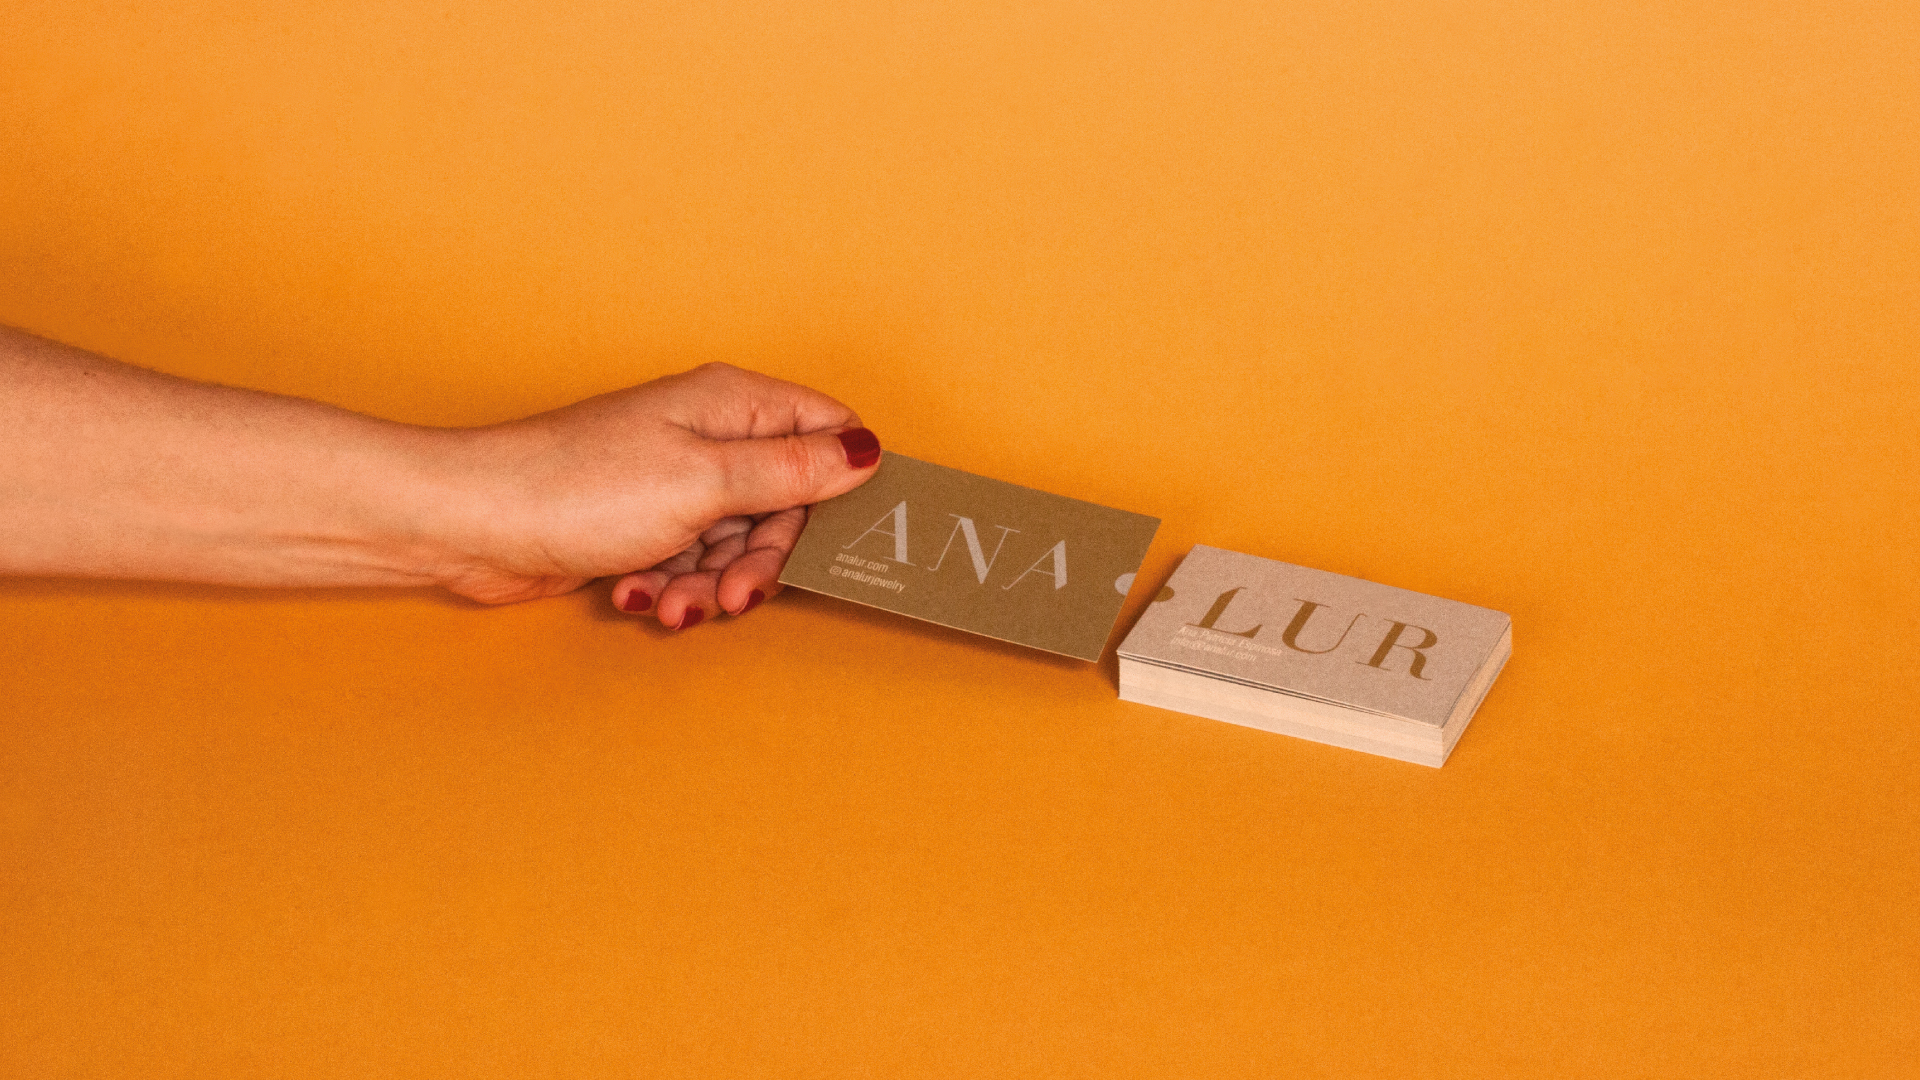 Analur business_ cards